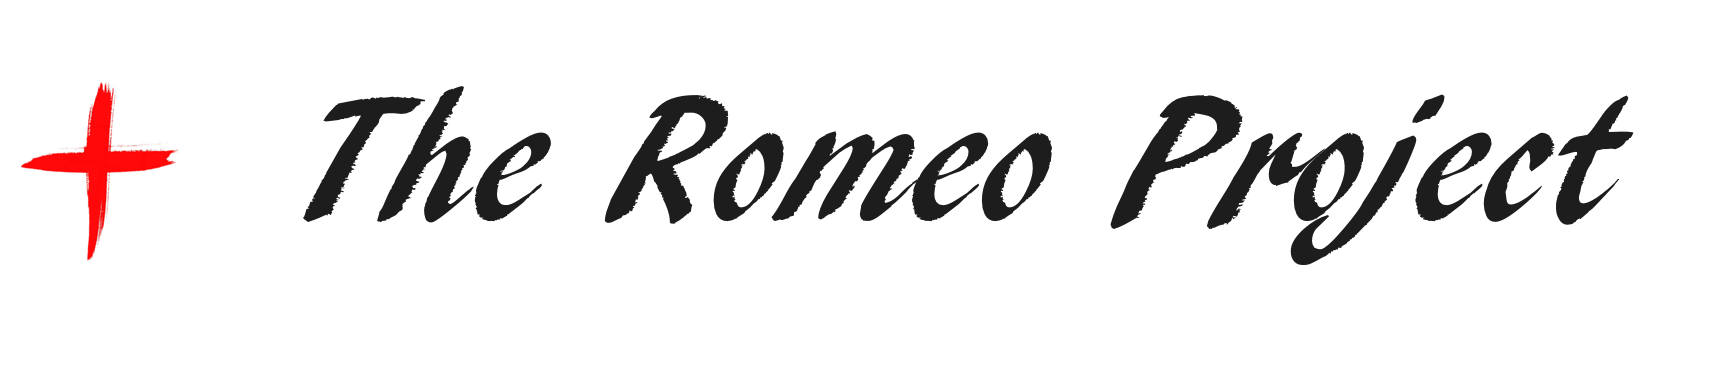 The Romeo Project